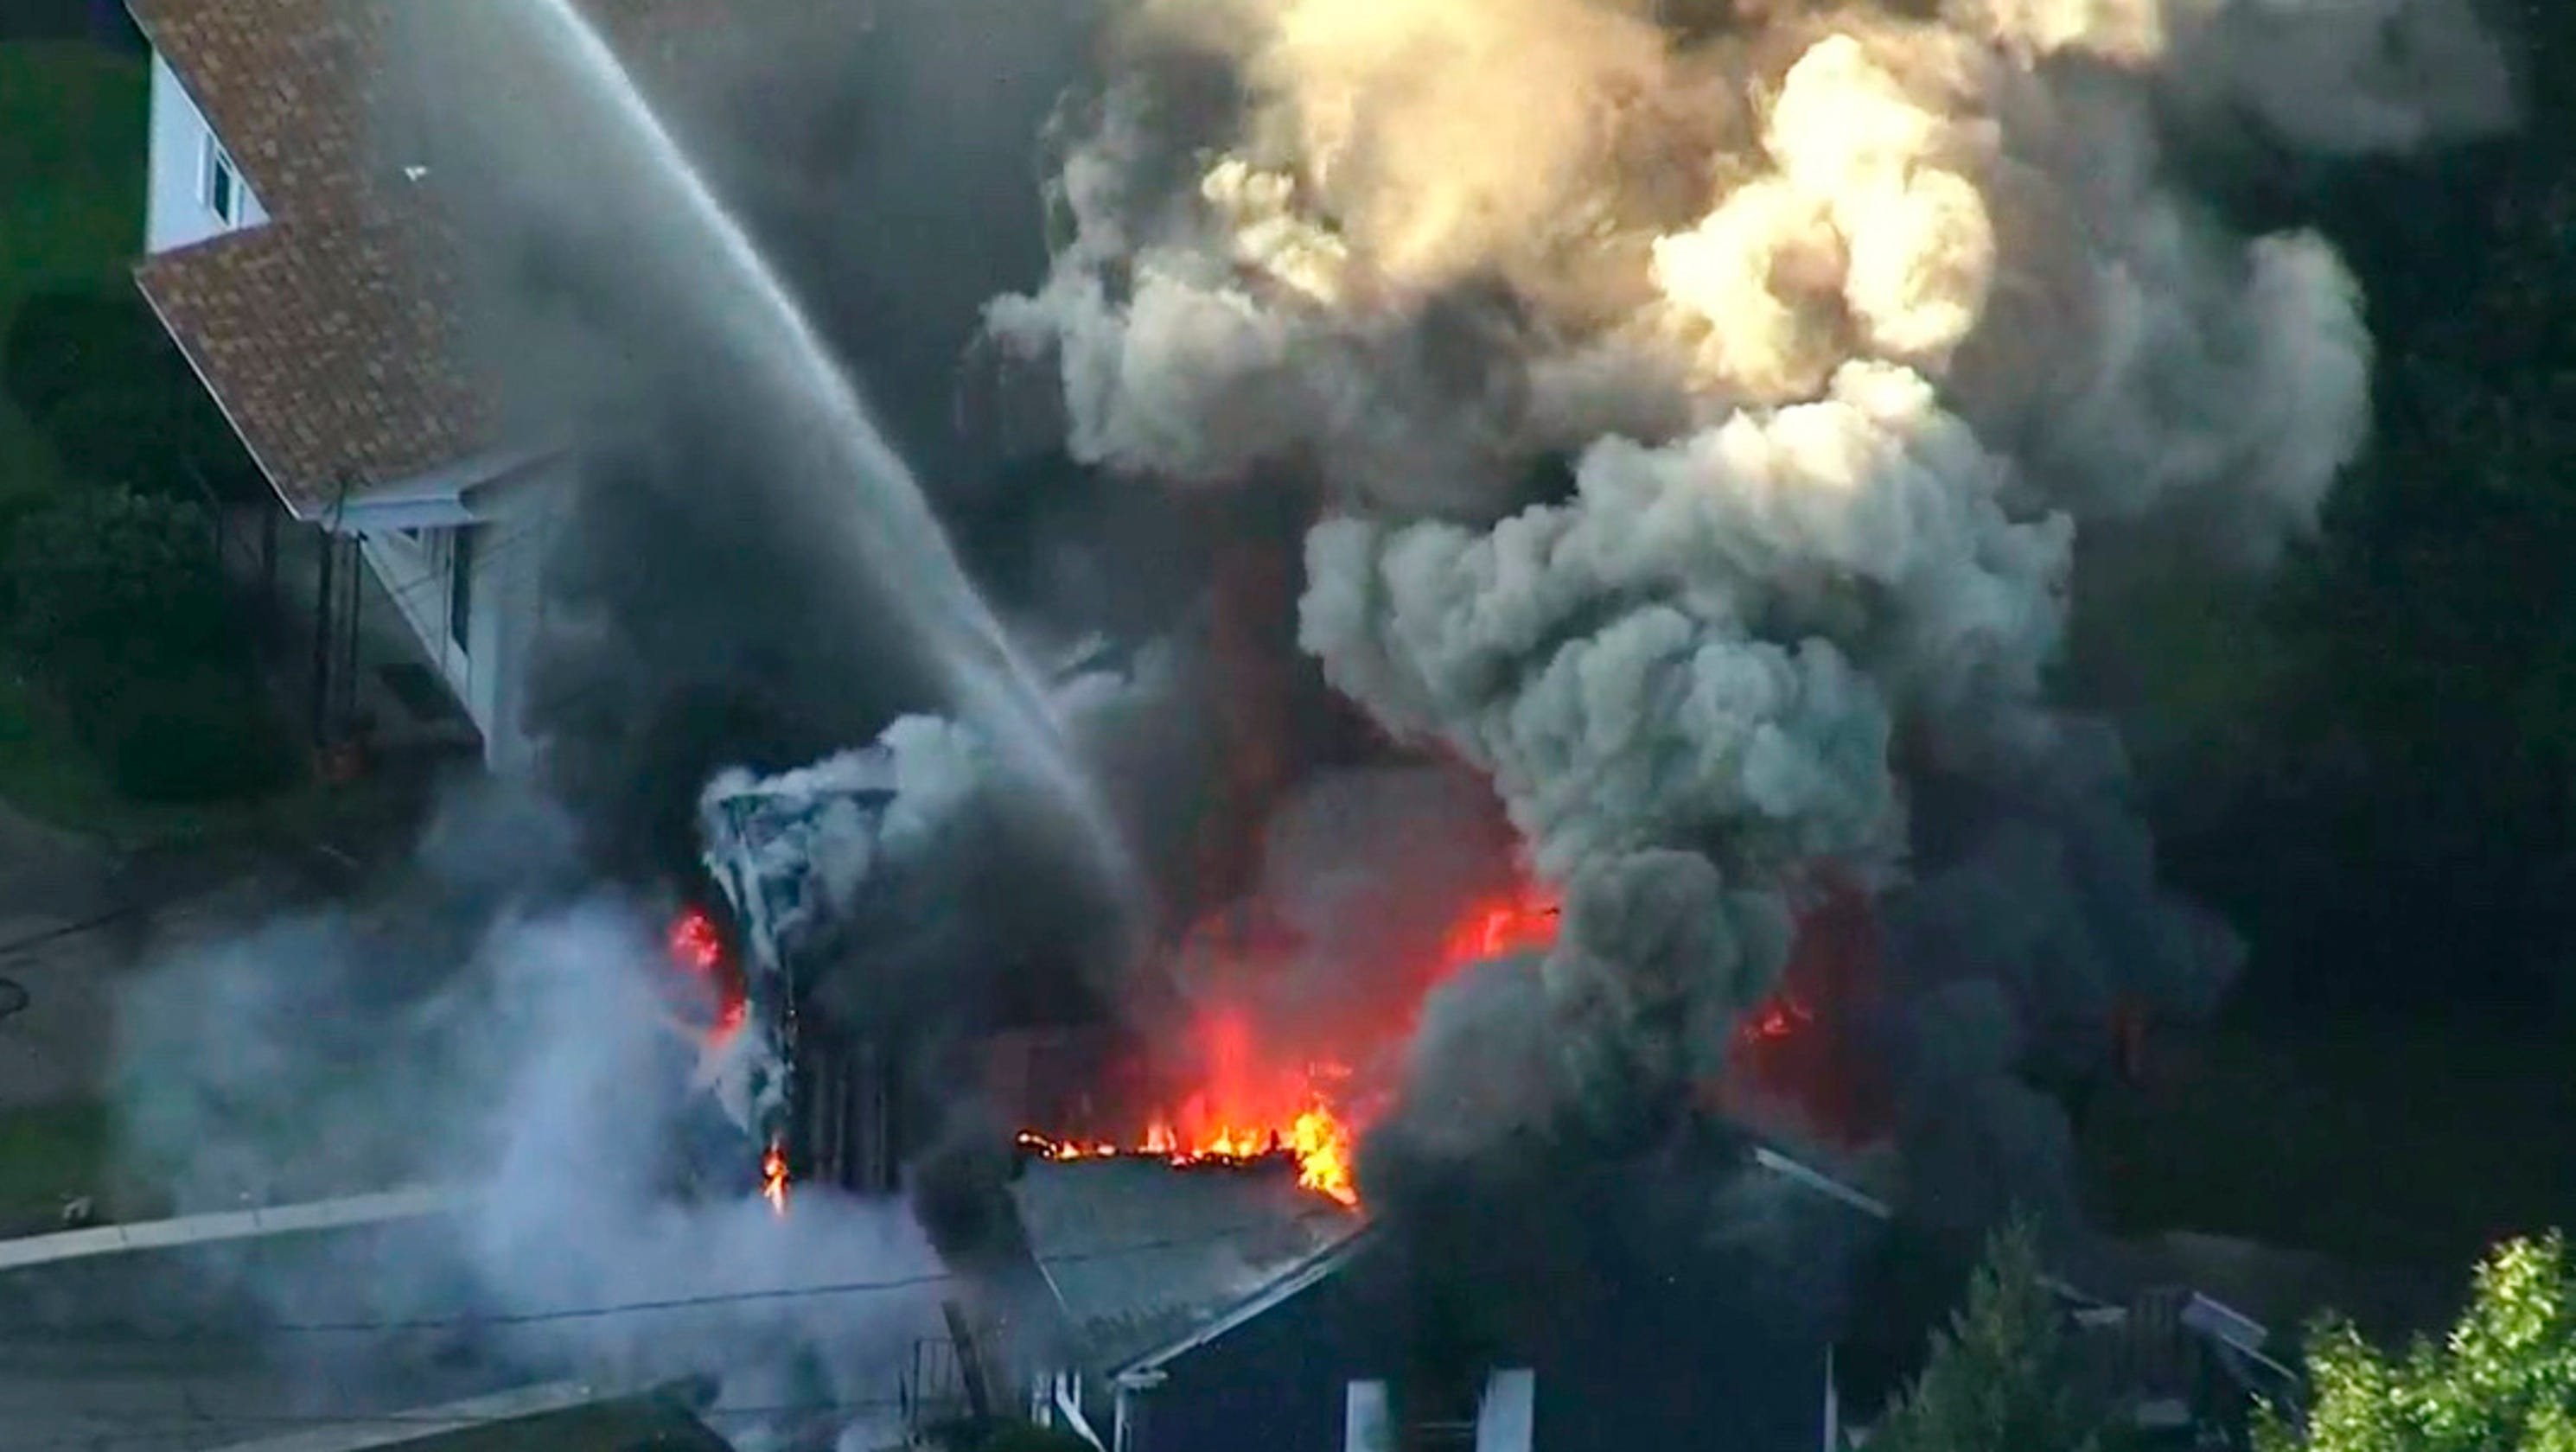 Massachusetts natural gas explosions: Pressure was 12 times normal